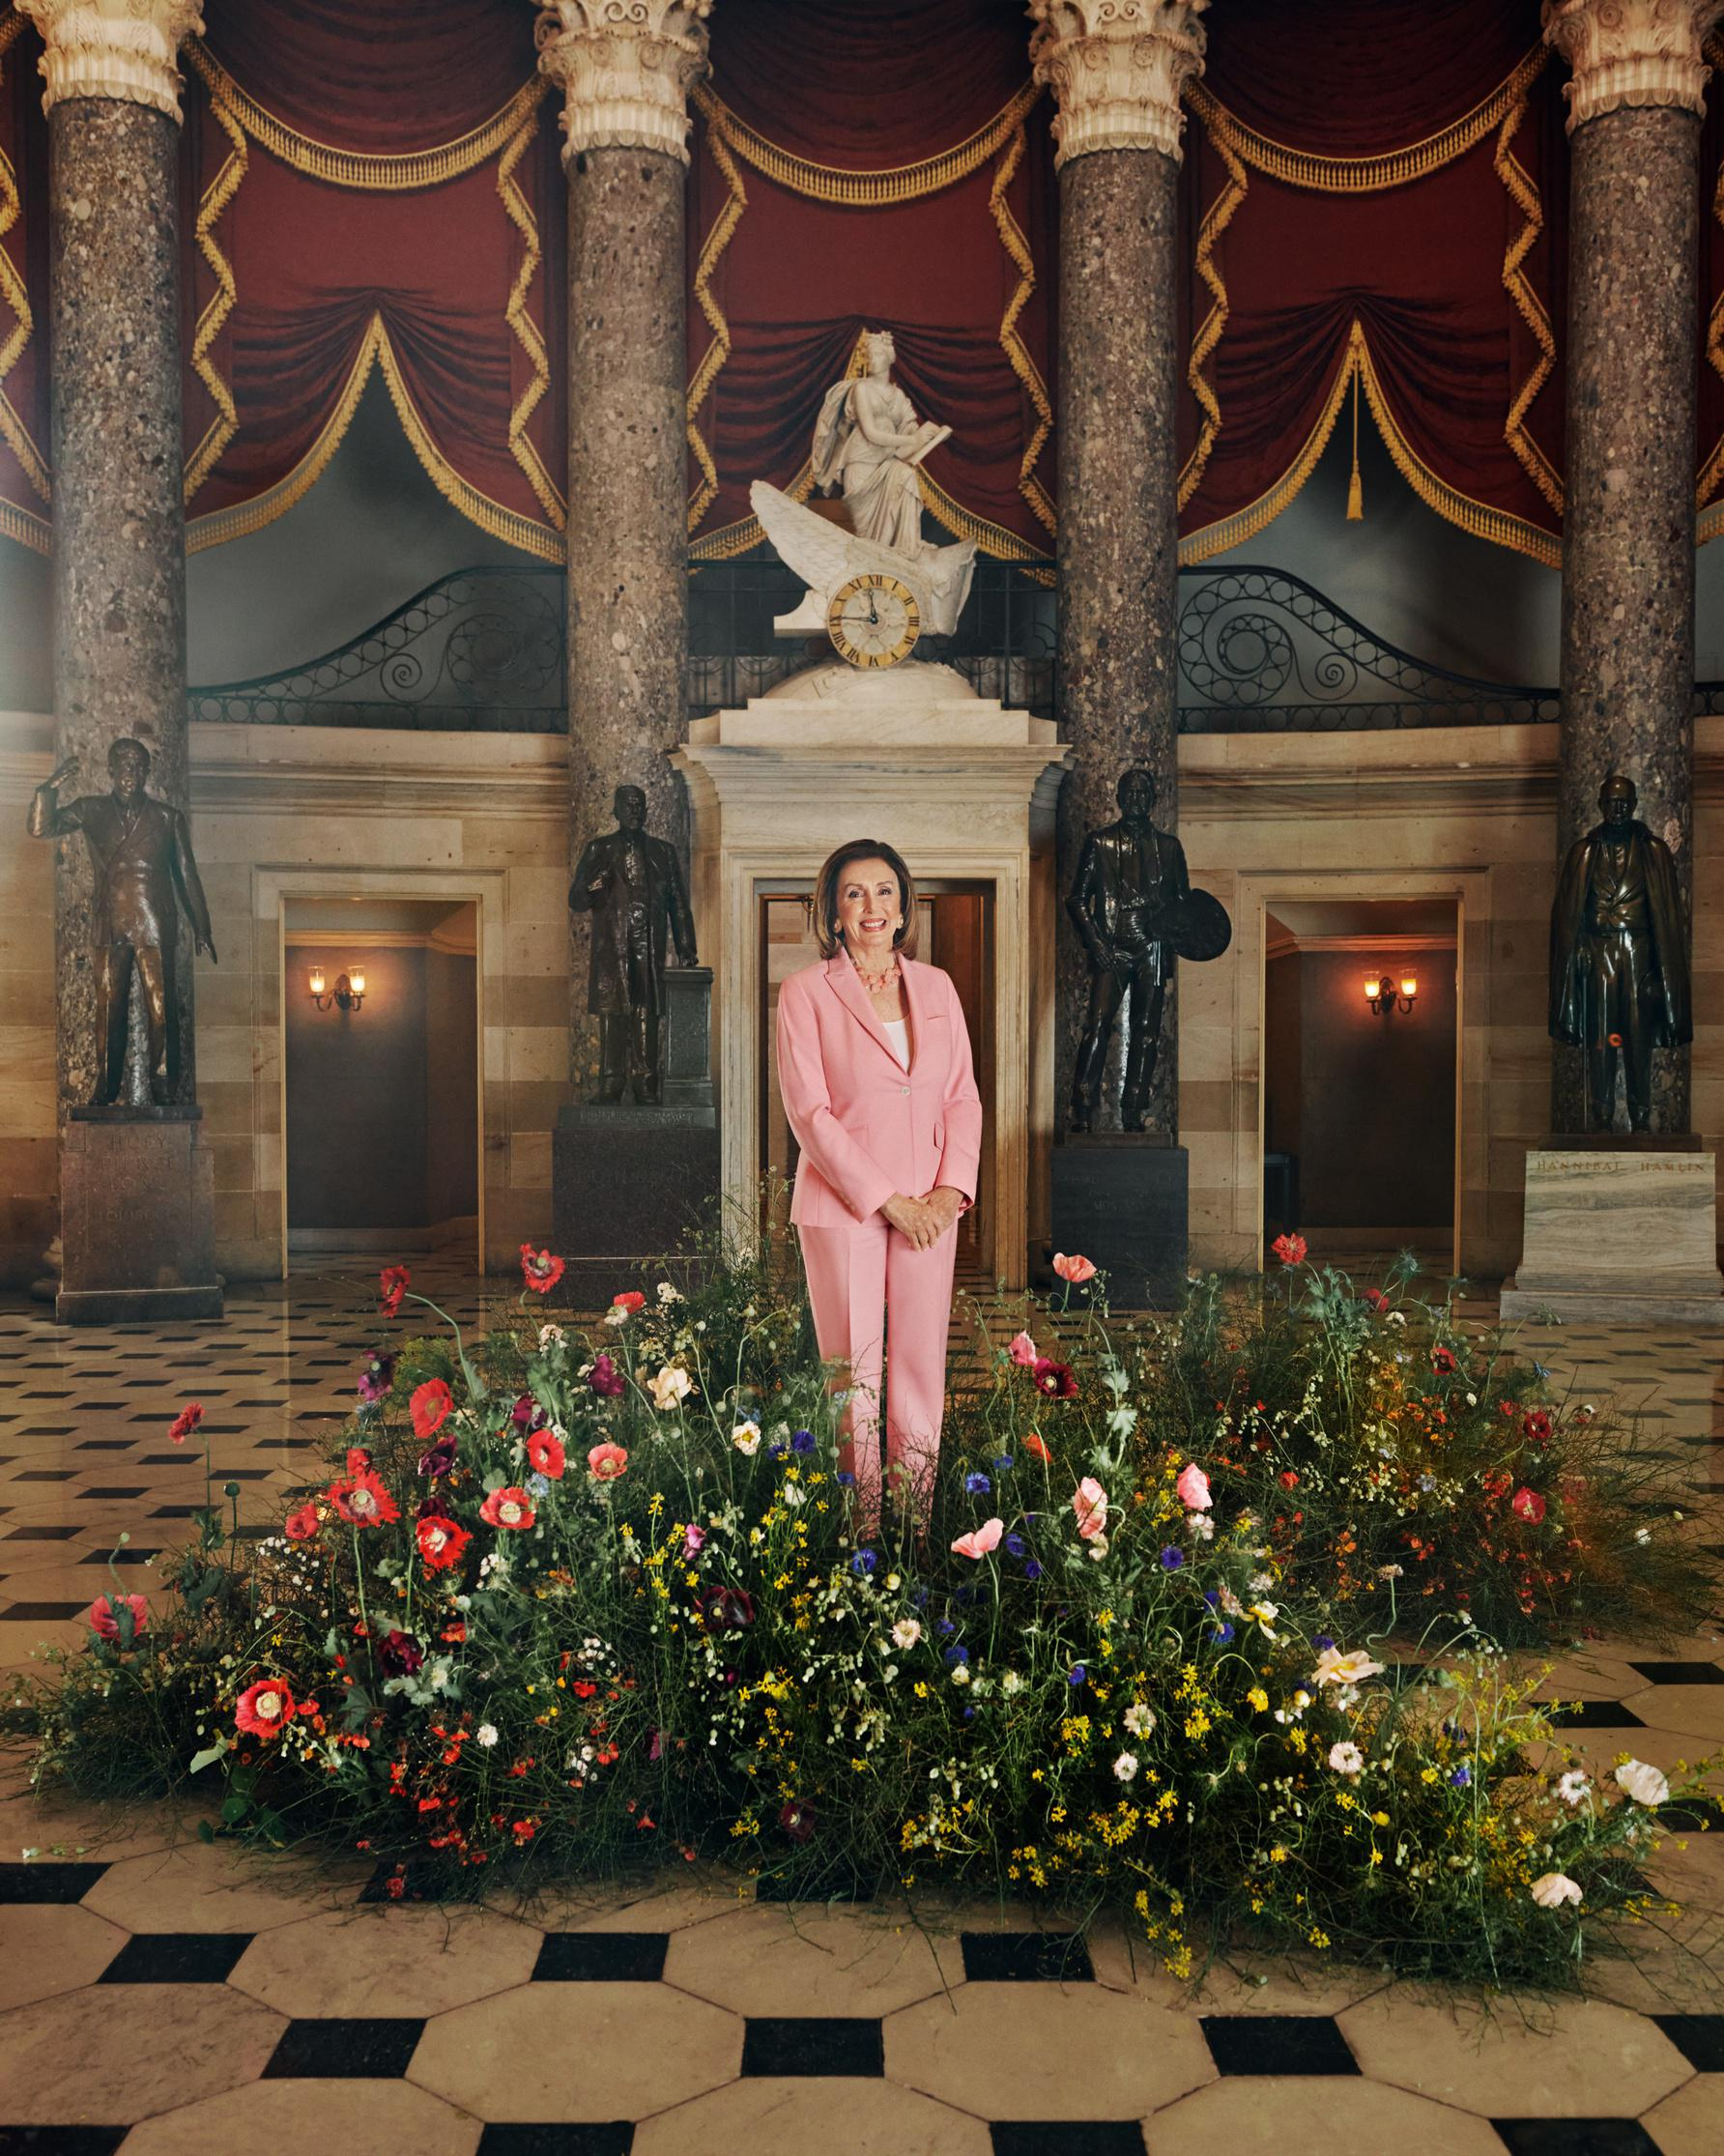 Speaker of the House Nancy Pelosi stands indefatigable amidst a fertile mound of earth and wildflowers installed in the National Statuary Hall in the U.S. Capitol.